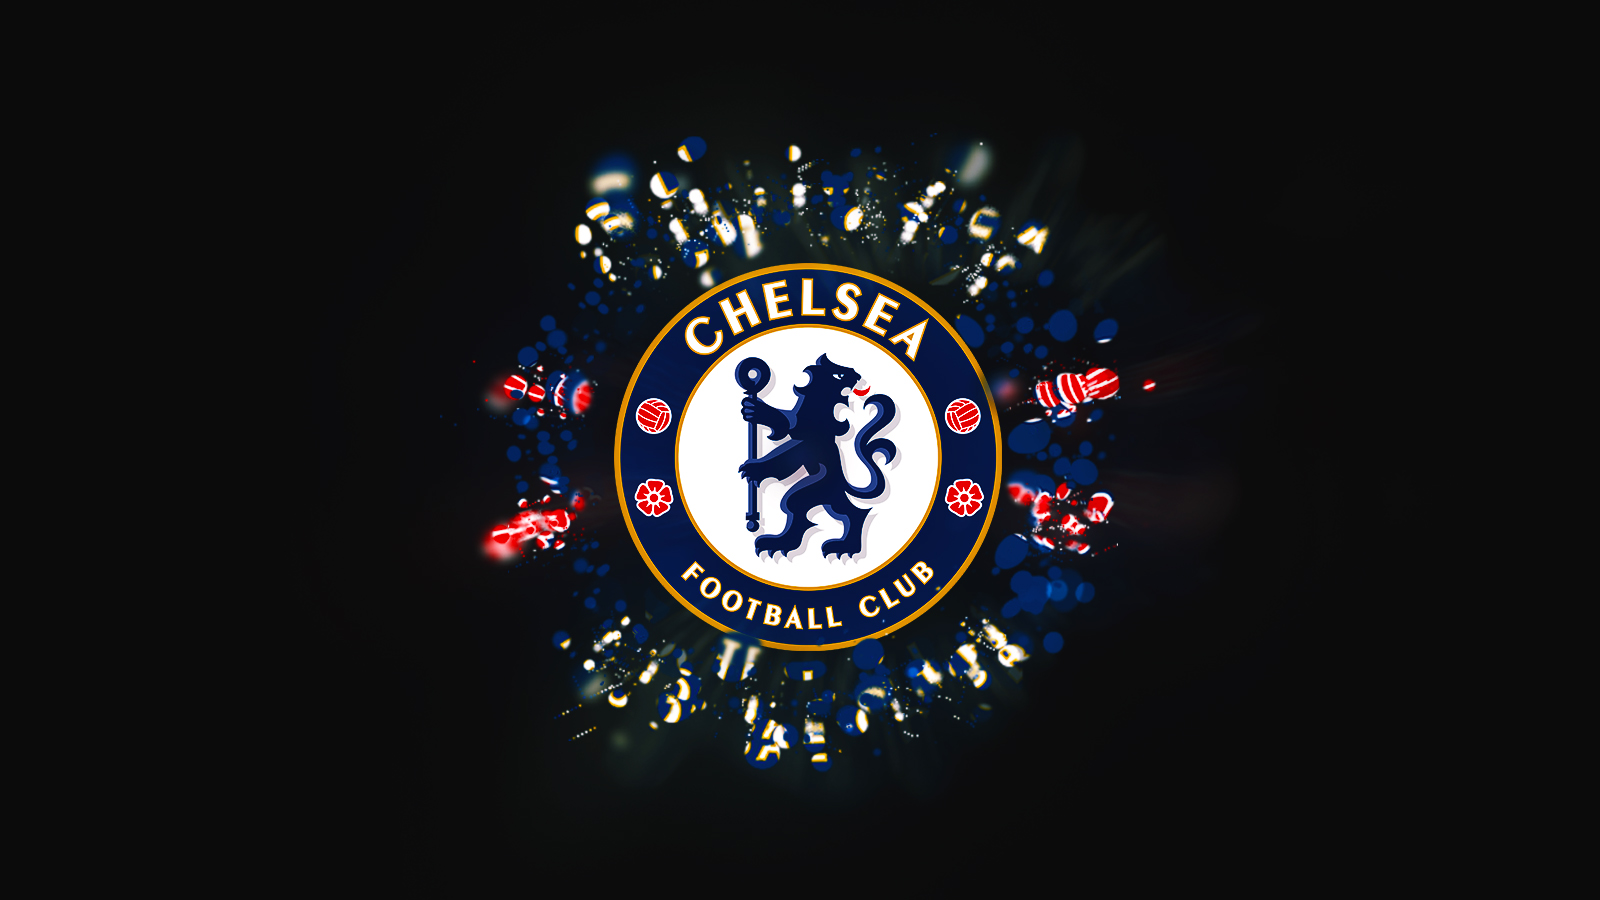 Gallery in dark background chelsea fc golden blue wallpaper hd in dark background chelsea fc golden blue wallpaper hd voltagebd Gallery